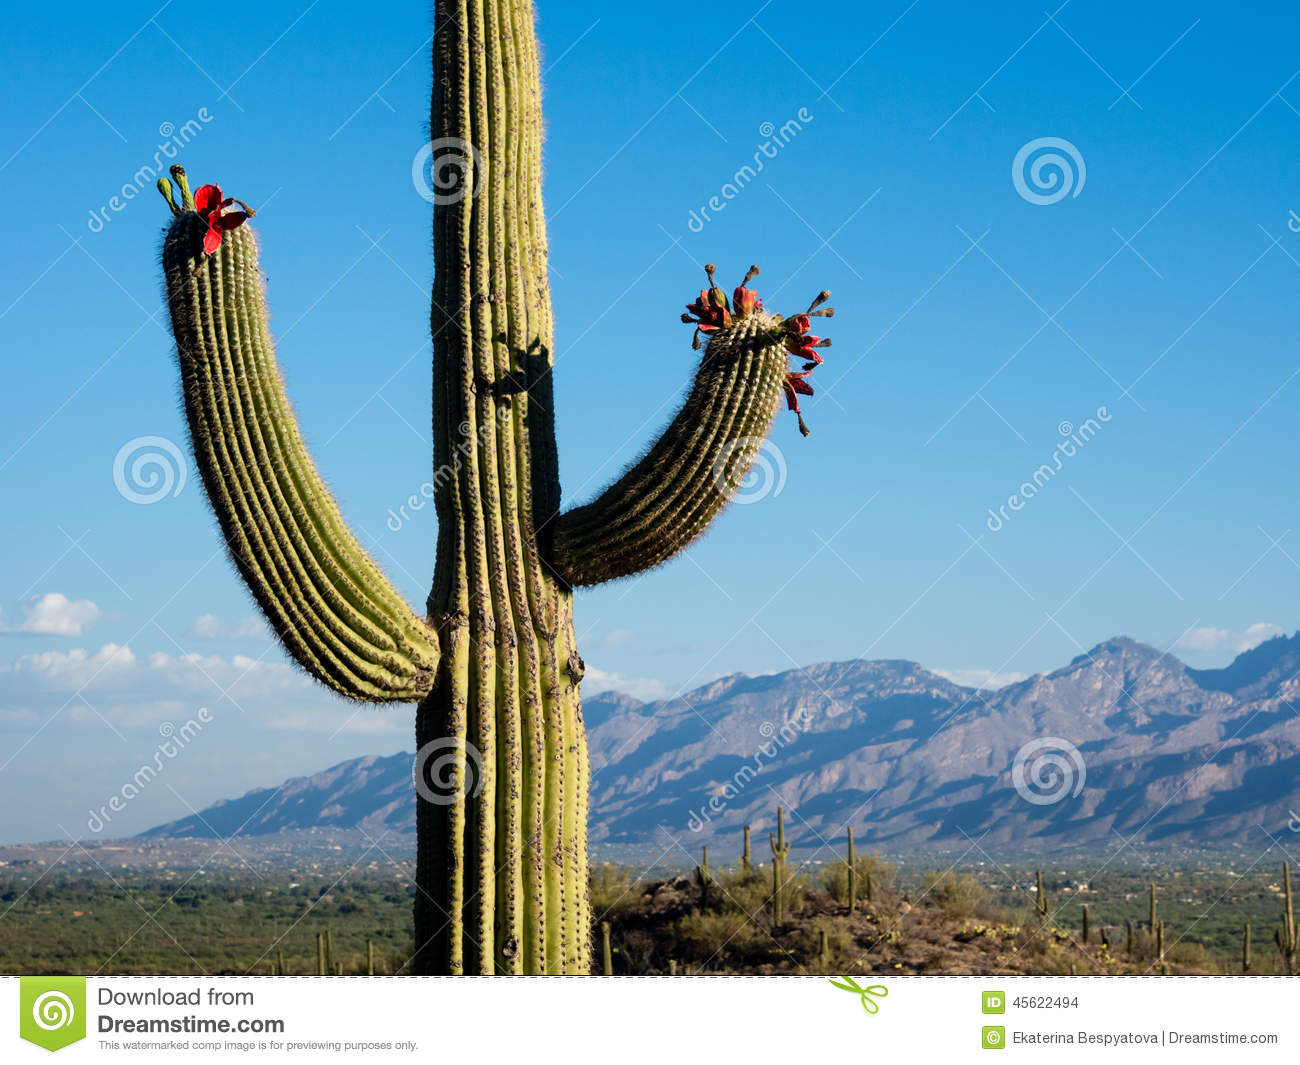 Blooming Giant Cactus At Sunrise Stock Photo - Image of ...